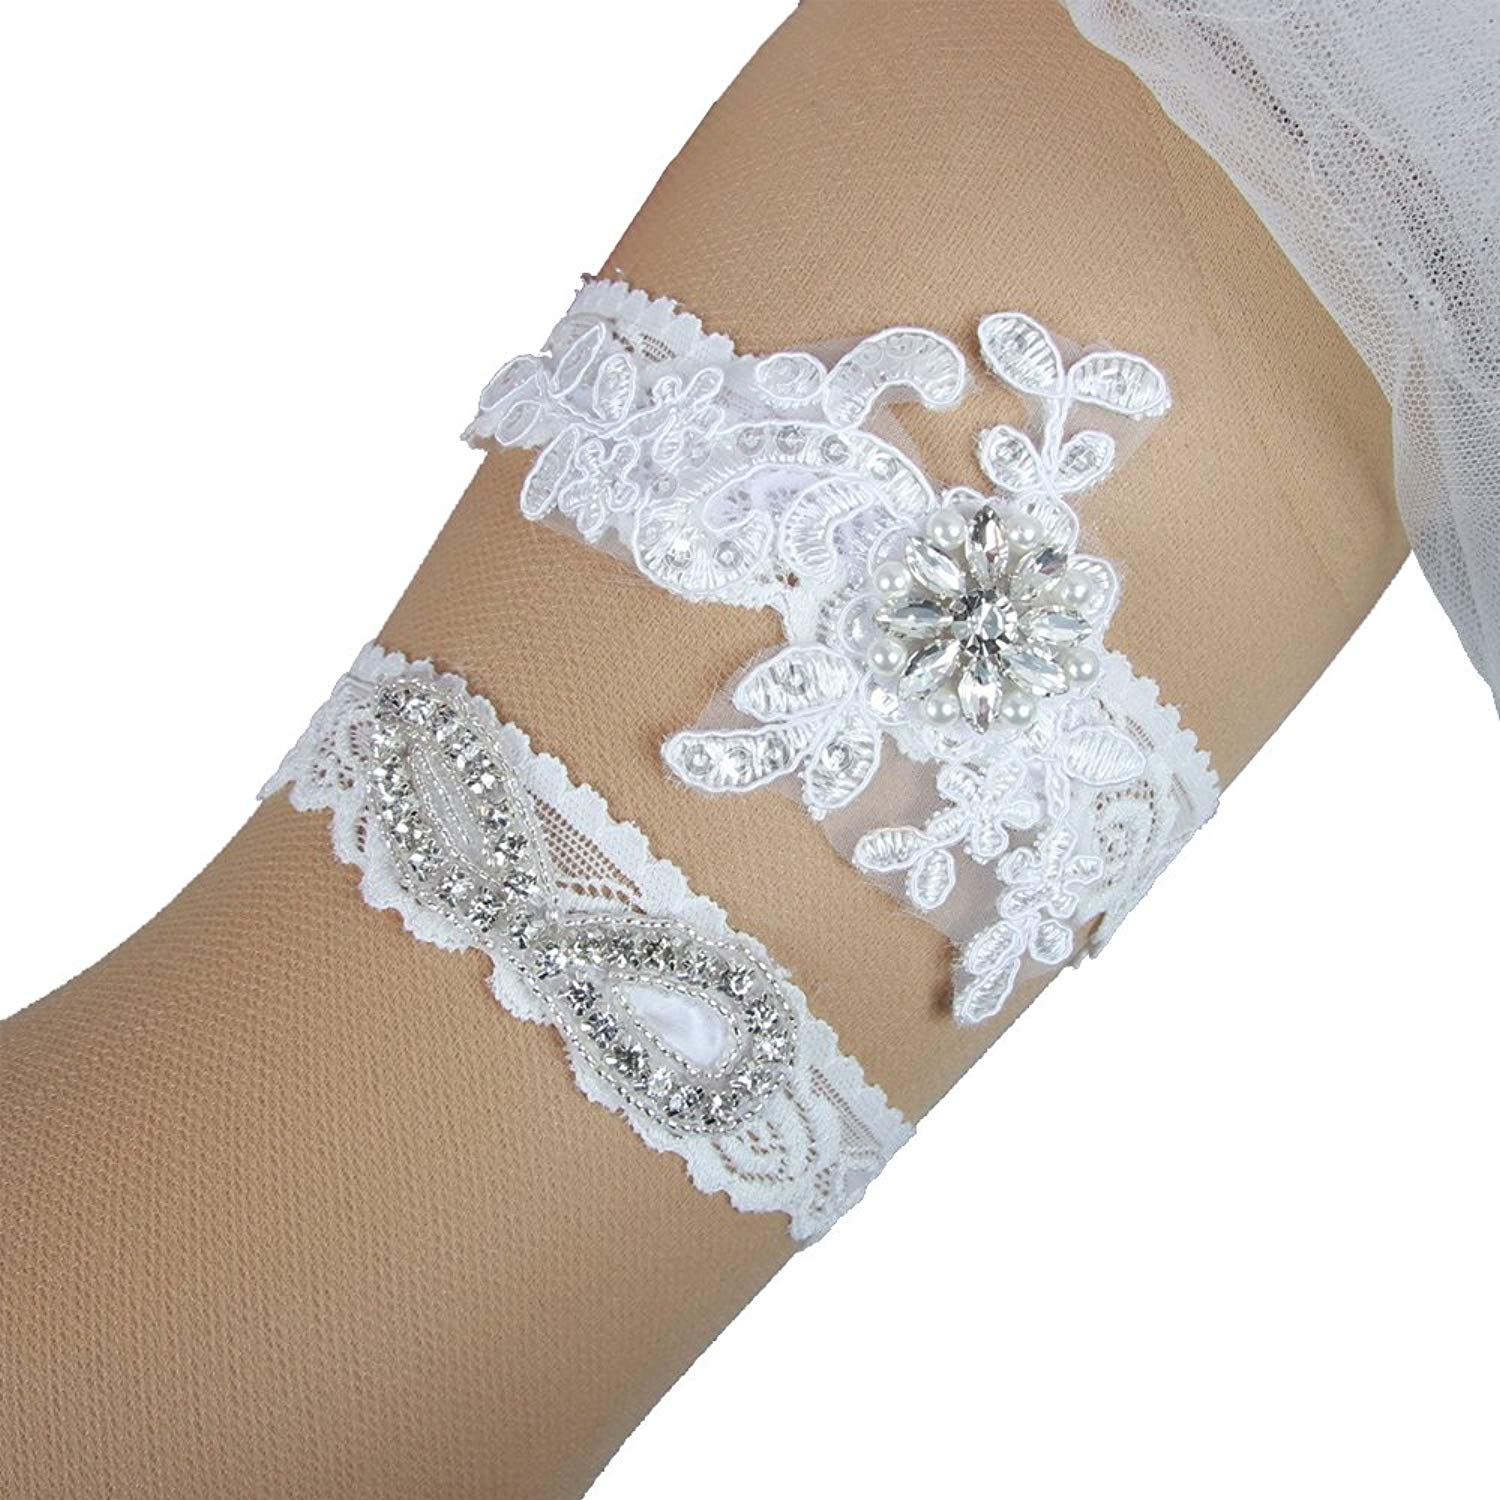 cc9d1bbec Get Quotations · LMIKELING Wedding Leg Garters Plus Size Crystals Beads Lace  Wedding Bridal Garters for Women